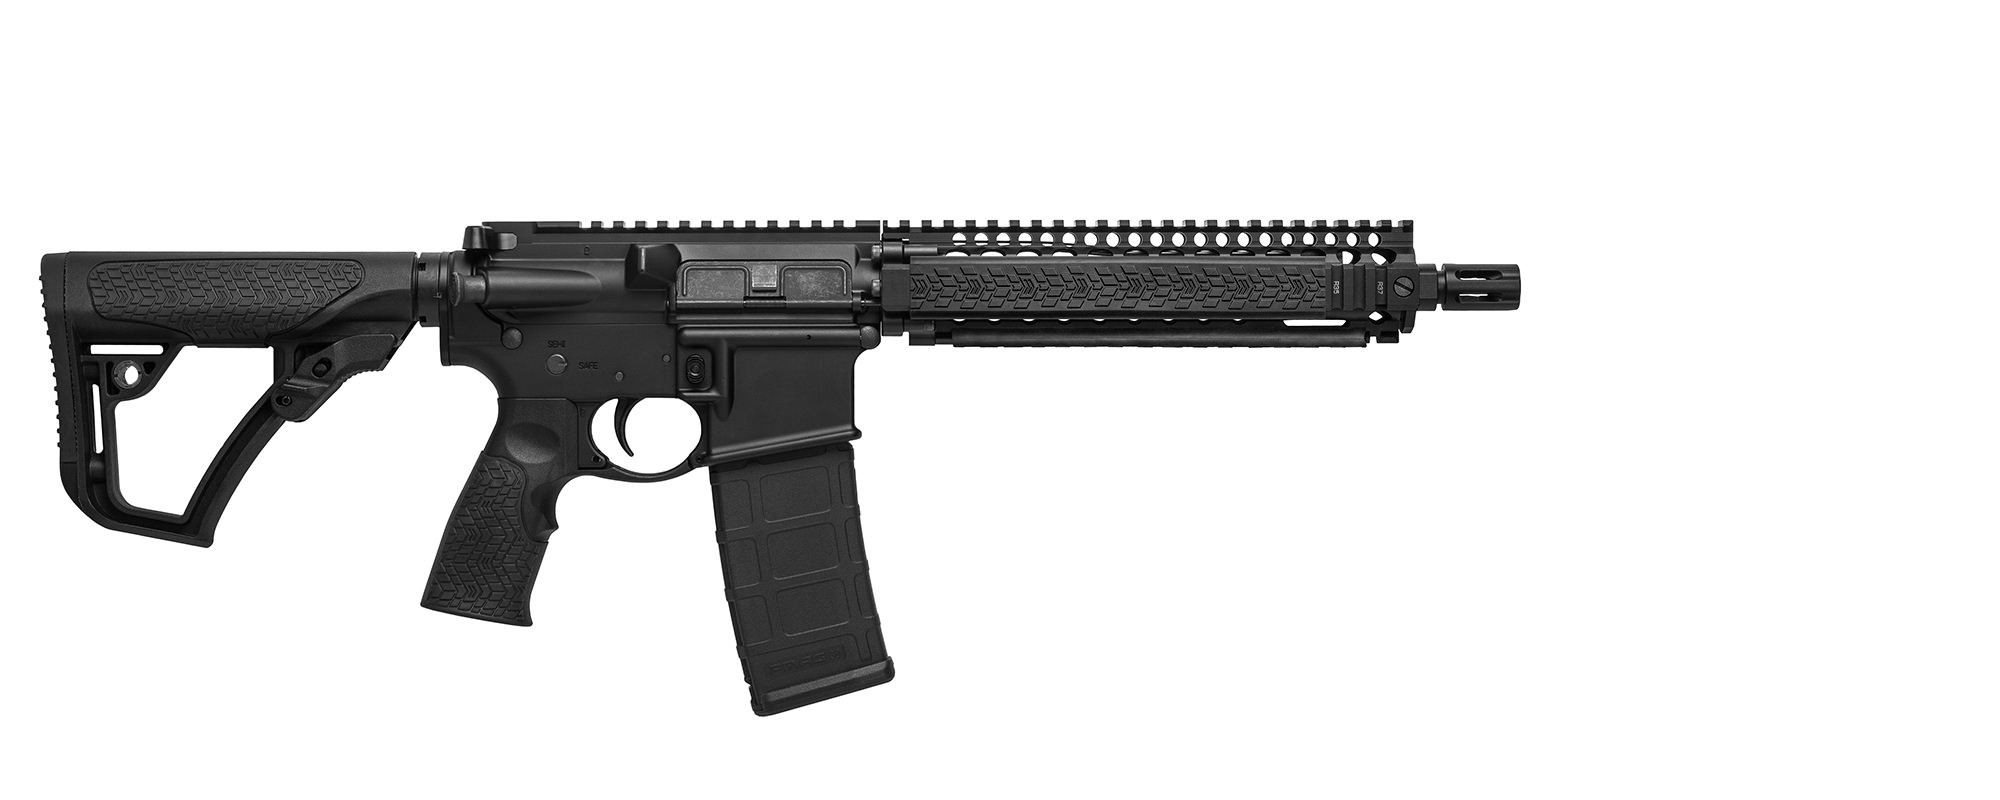 Daniel Defense MK18 Factory SBR 2